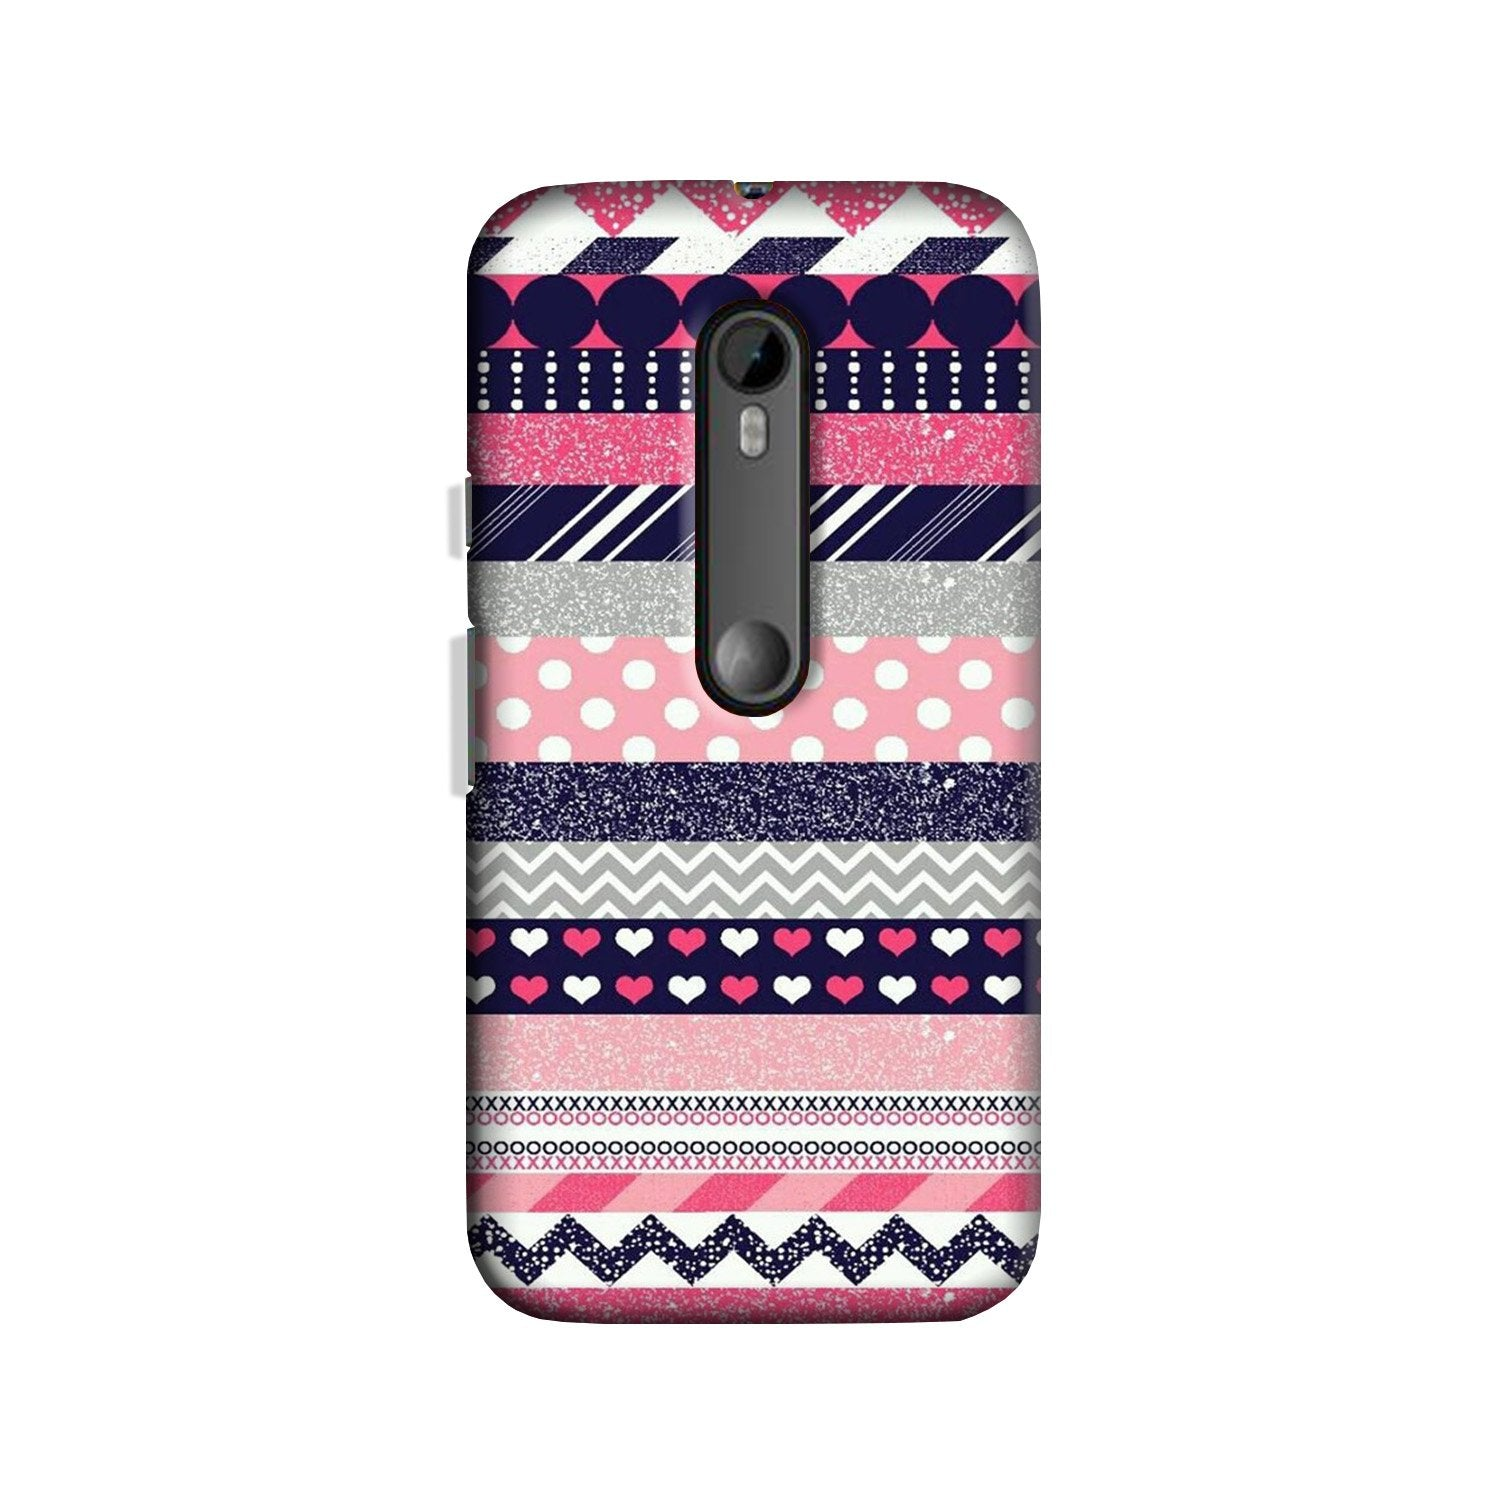 Pattern Case for Moto G 3rd Gen